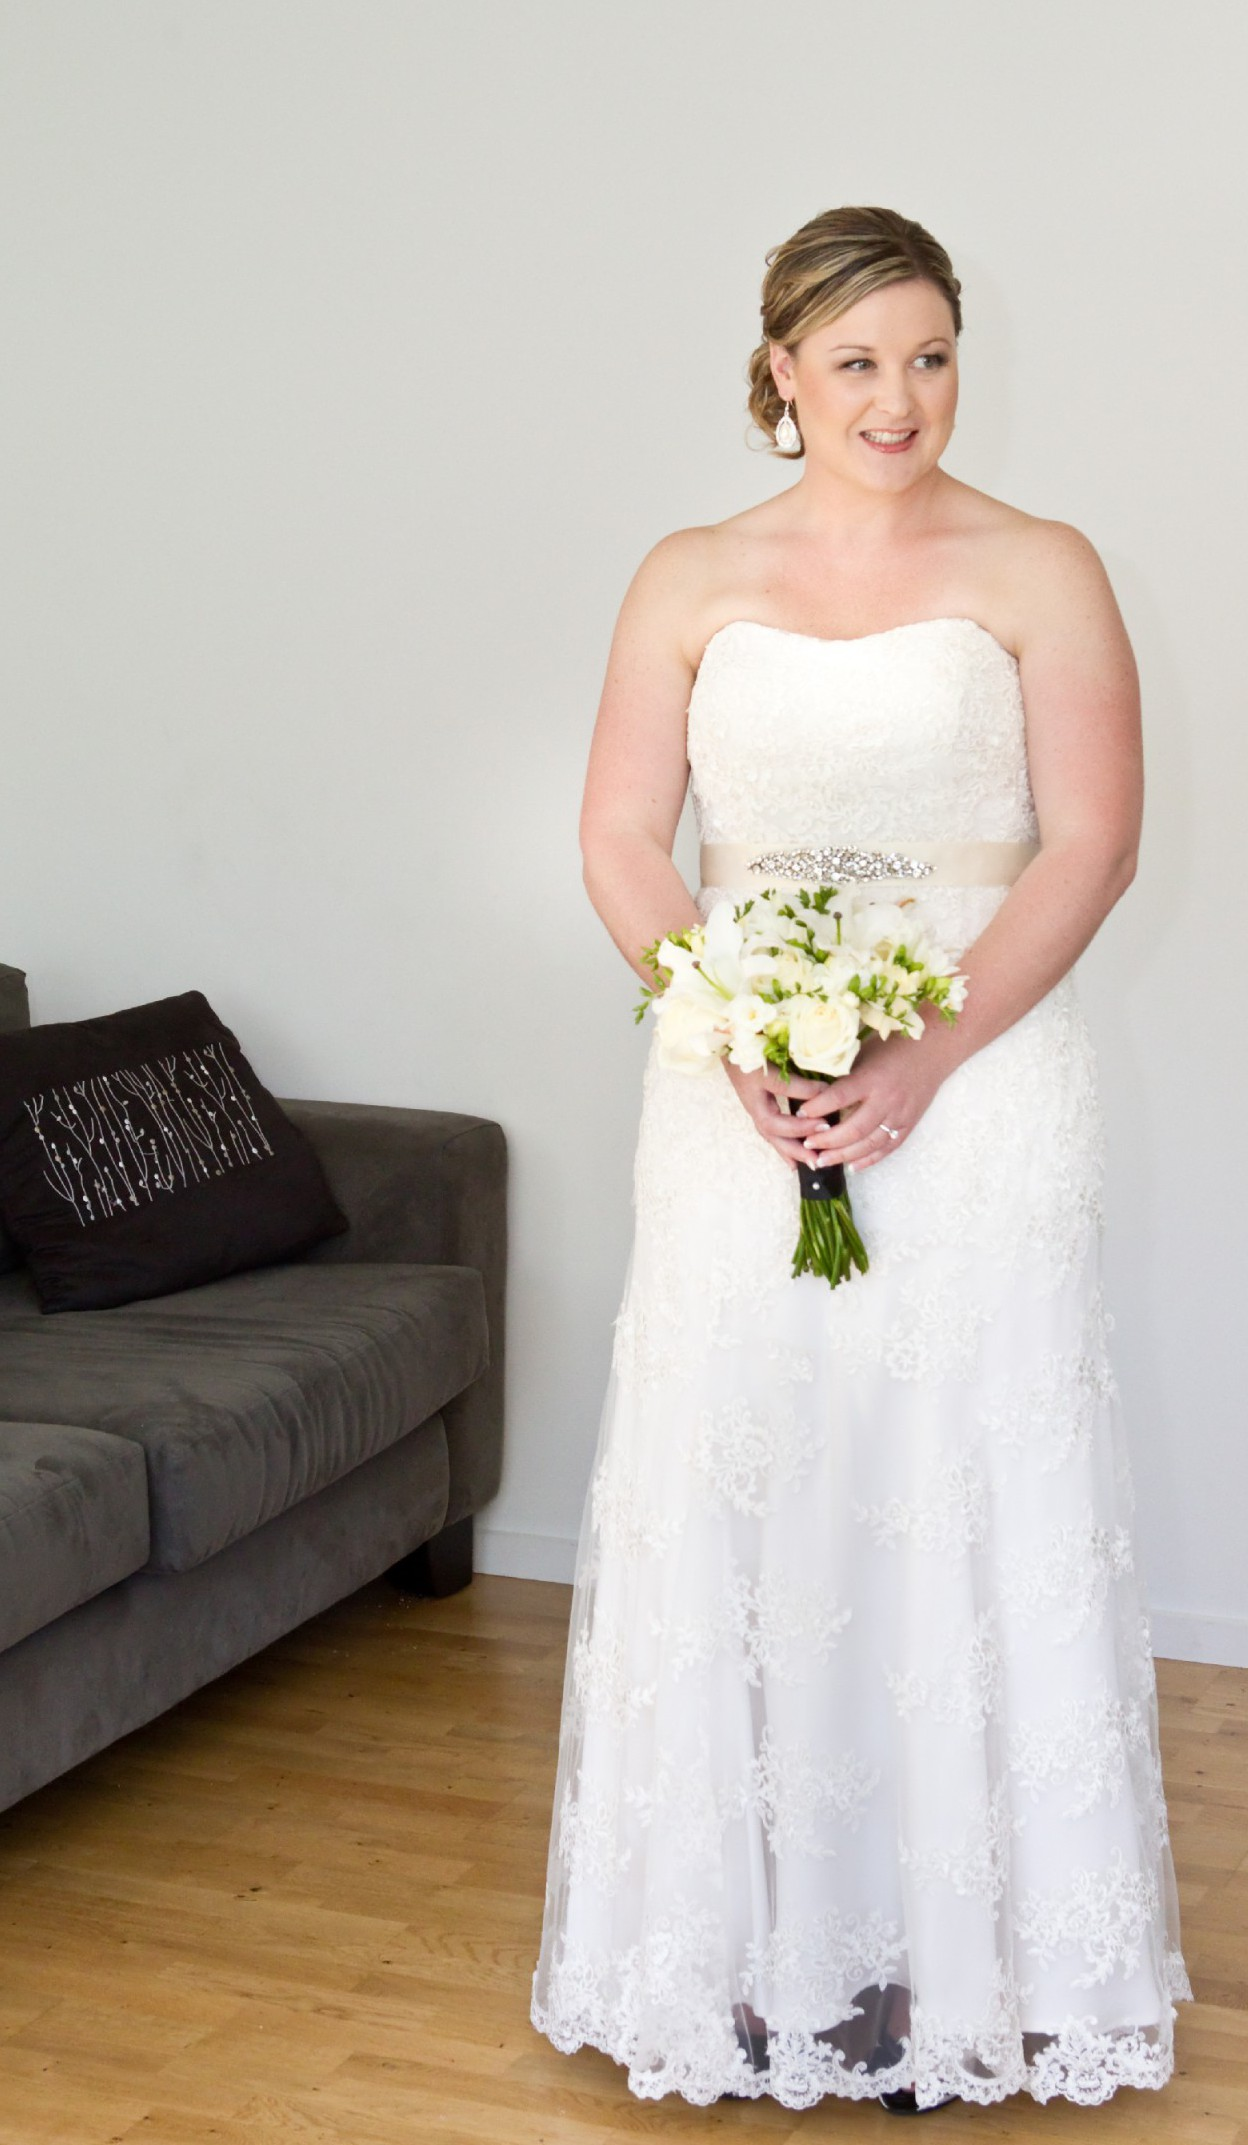 Jo sculli pre owned wedding dress on sale 55 off for Where can i sell my wedding dress locally